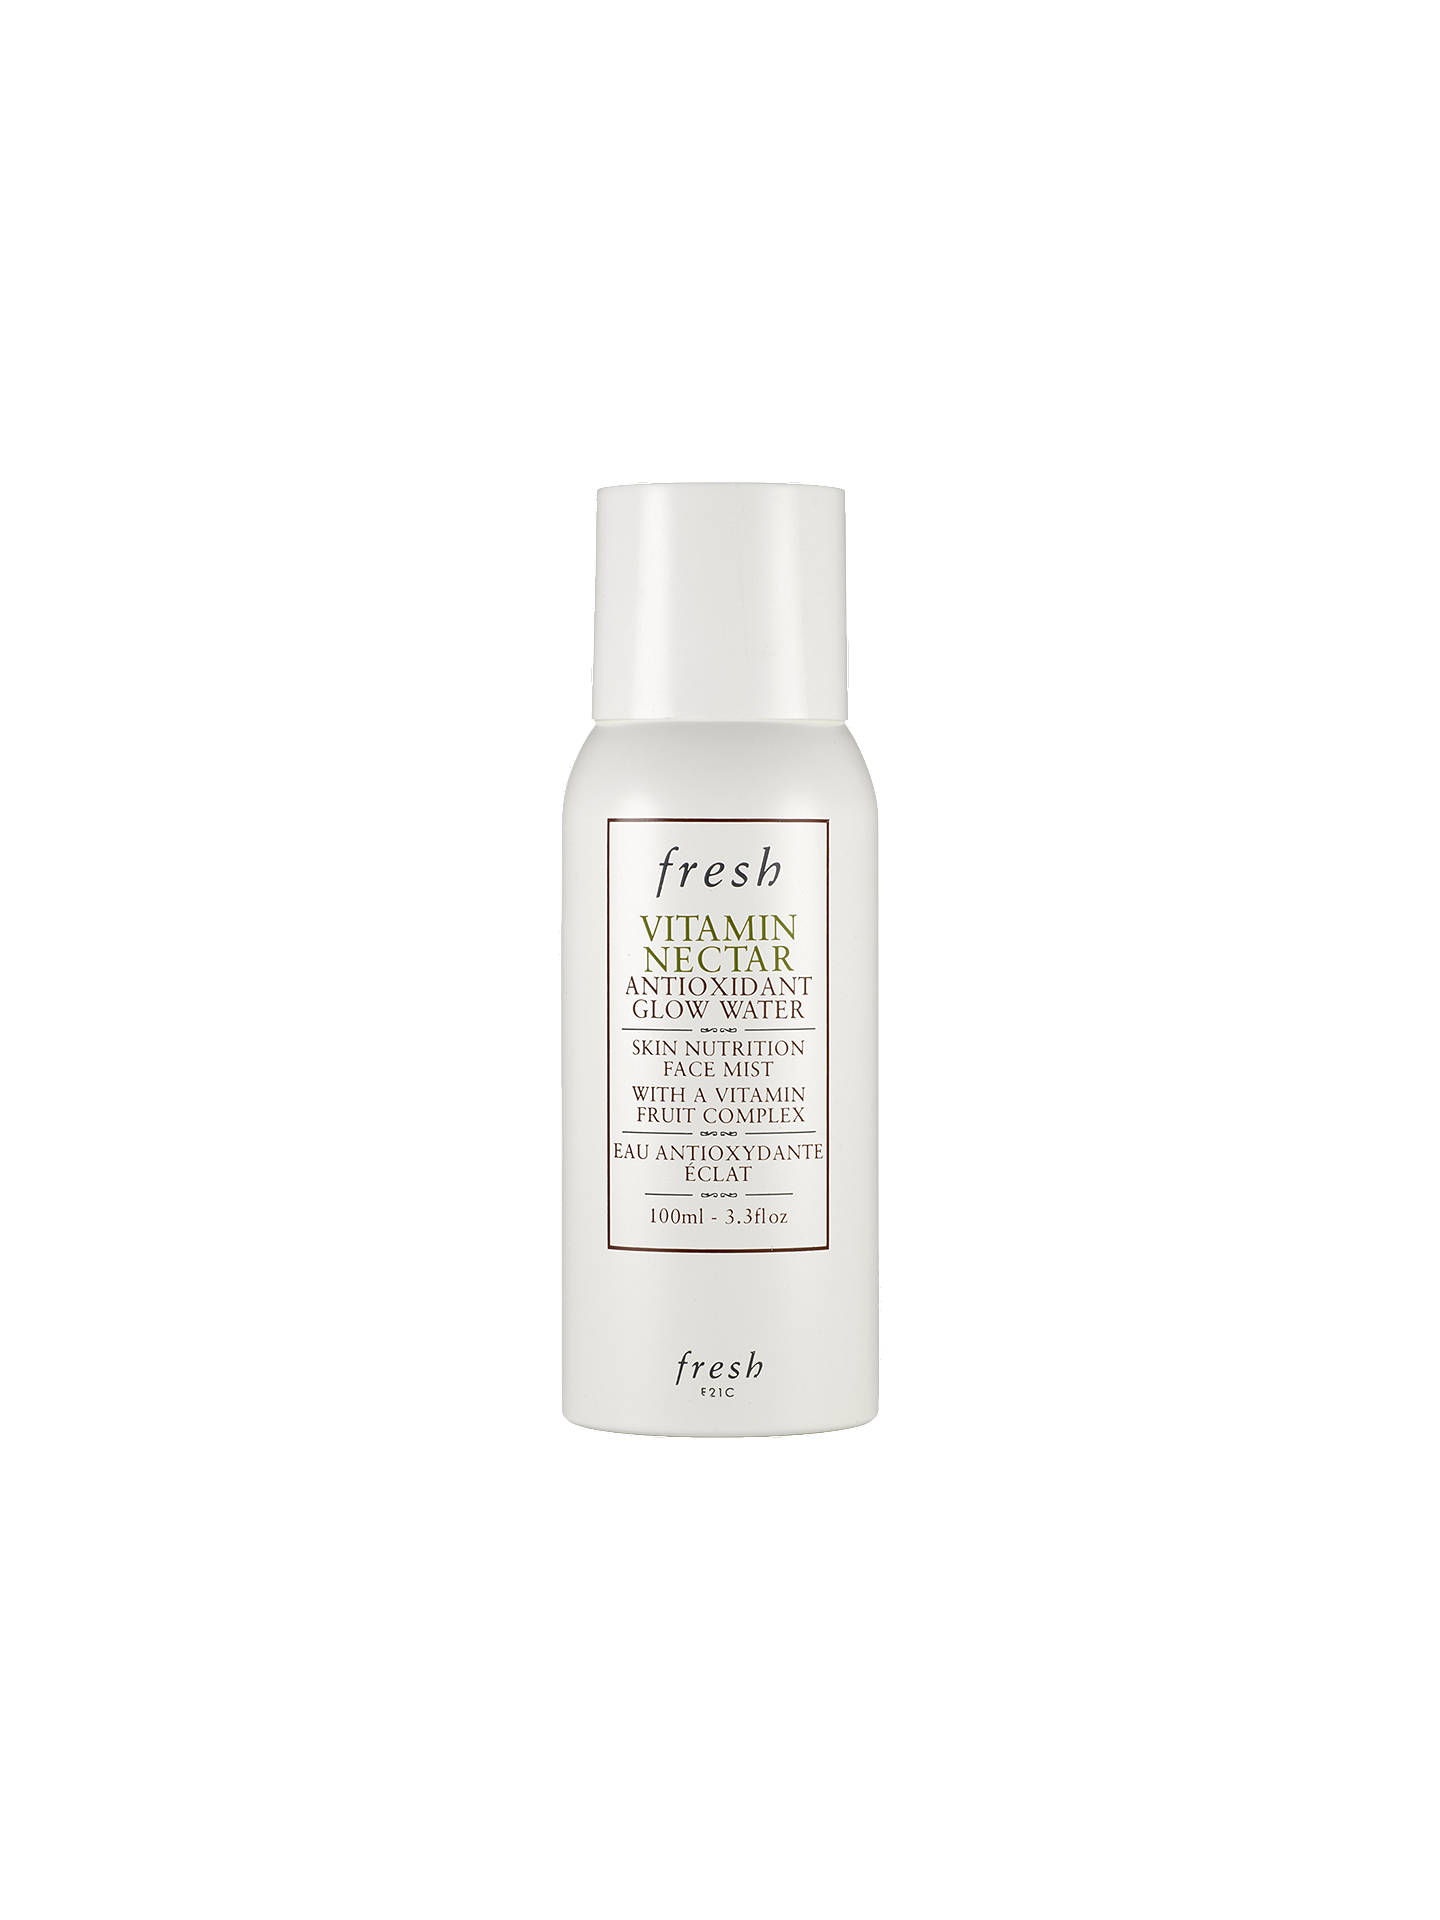 Buy Fresh Vitamin Nectar Antioxidant Glow Water Skin Nutrition Face Mist, 100ml Online at johnlewis.com